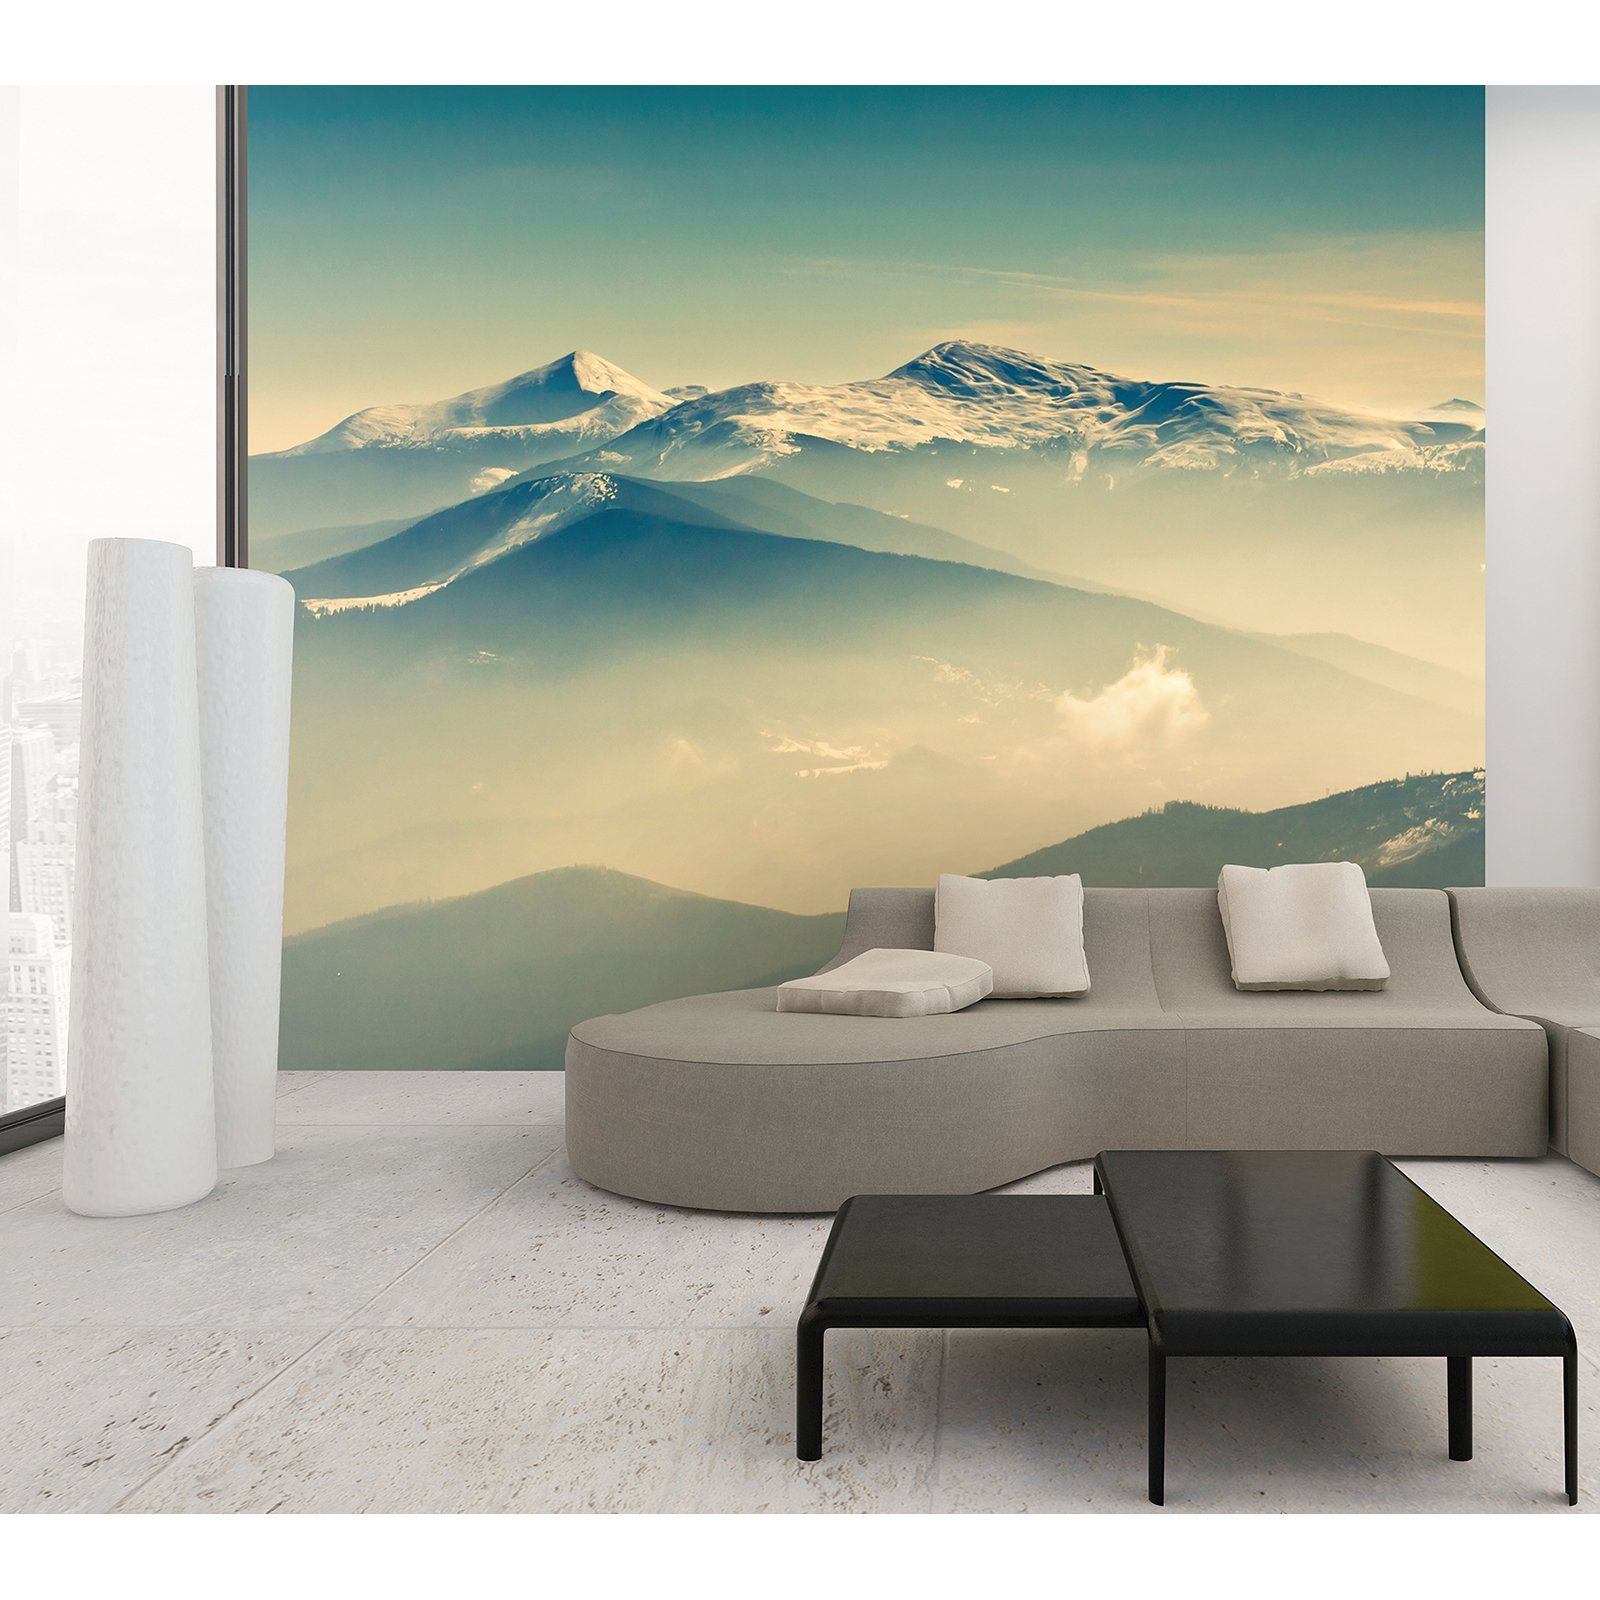 ohpopsi Summit Wall Mural - WALS0061 | Products | Pinterest | Wall ...